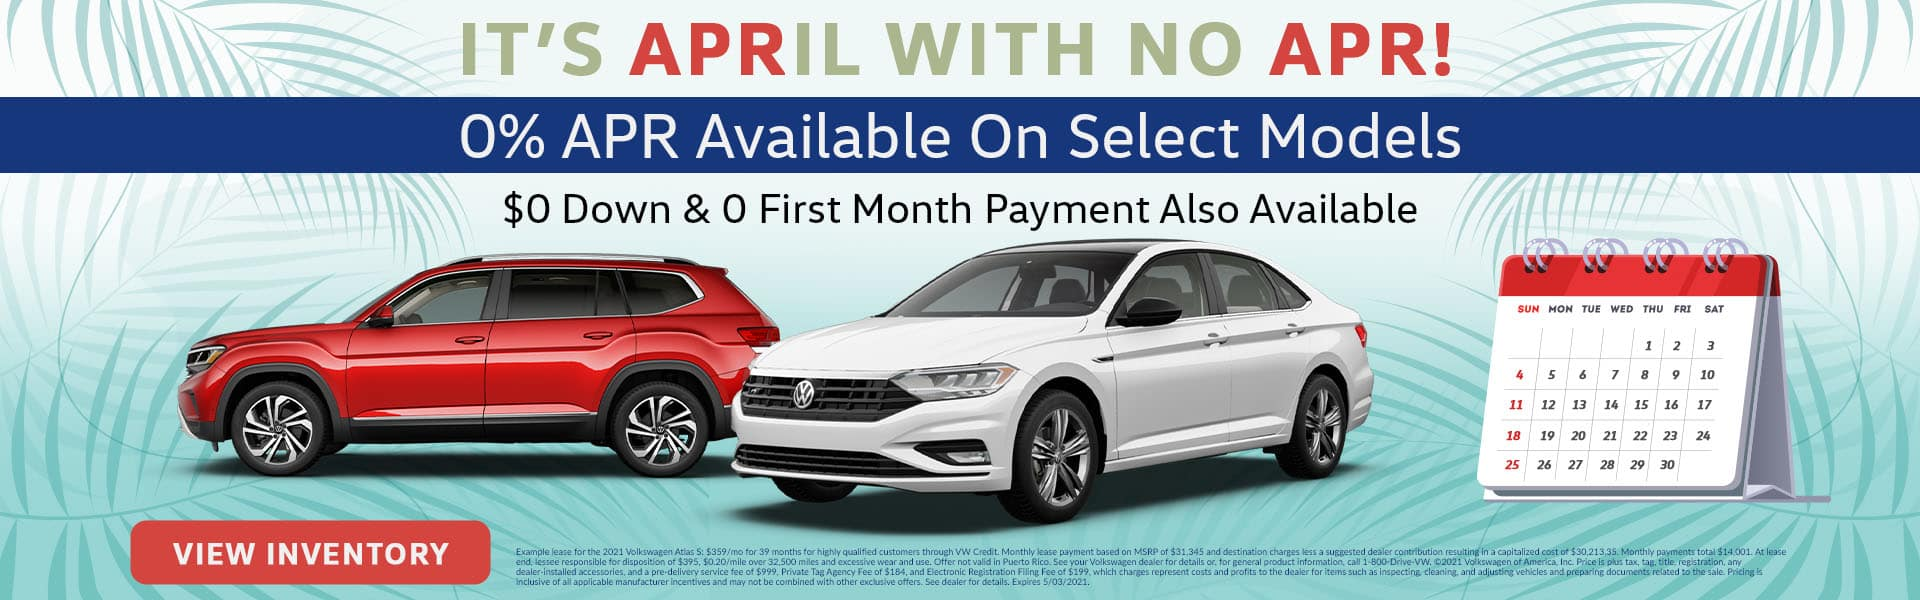 It's April with No APR! 0% APR Available on Select Models, $0 Down, & 0 First Month's Payment Also Available